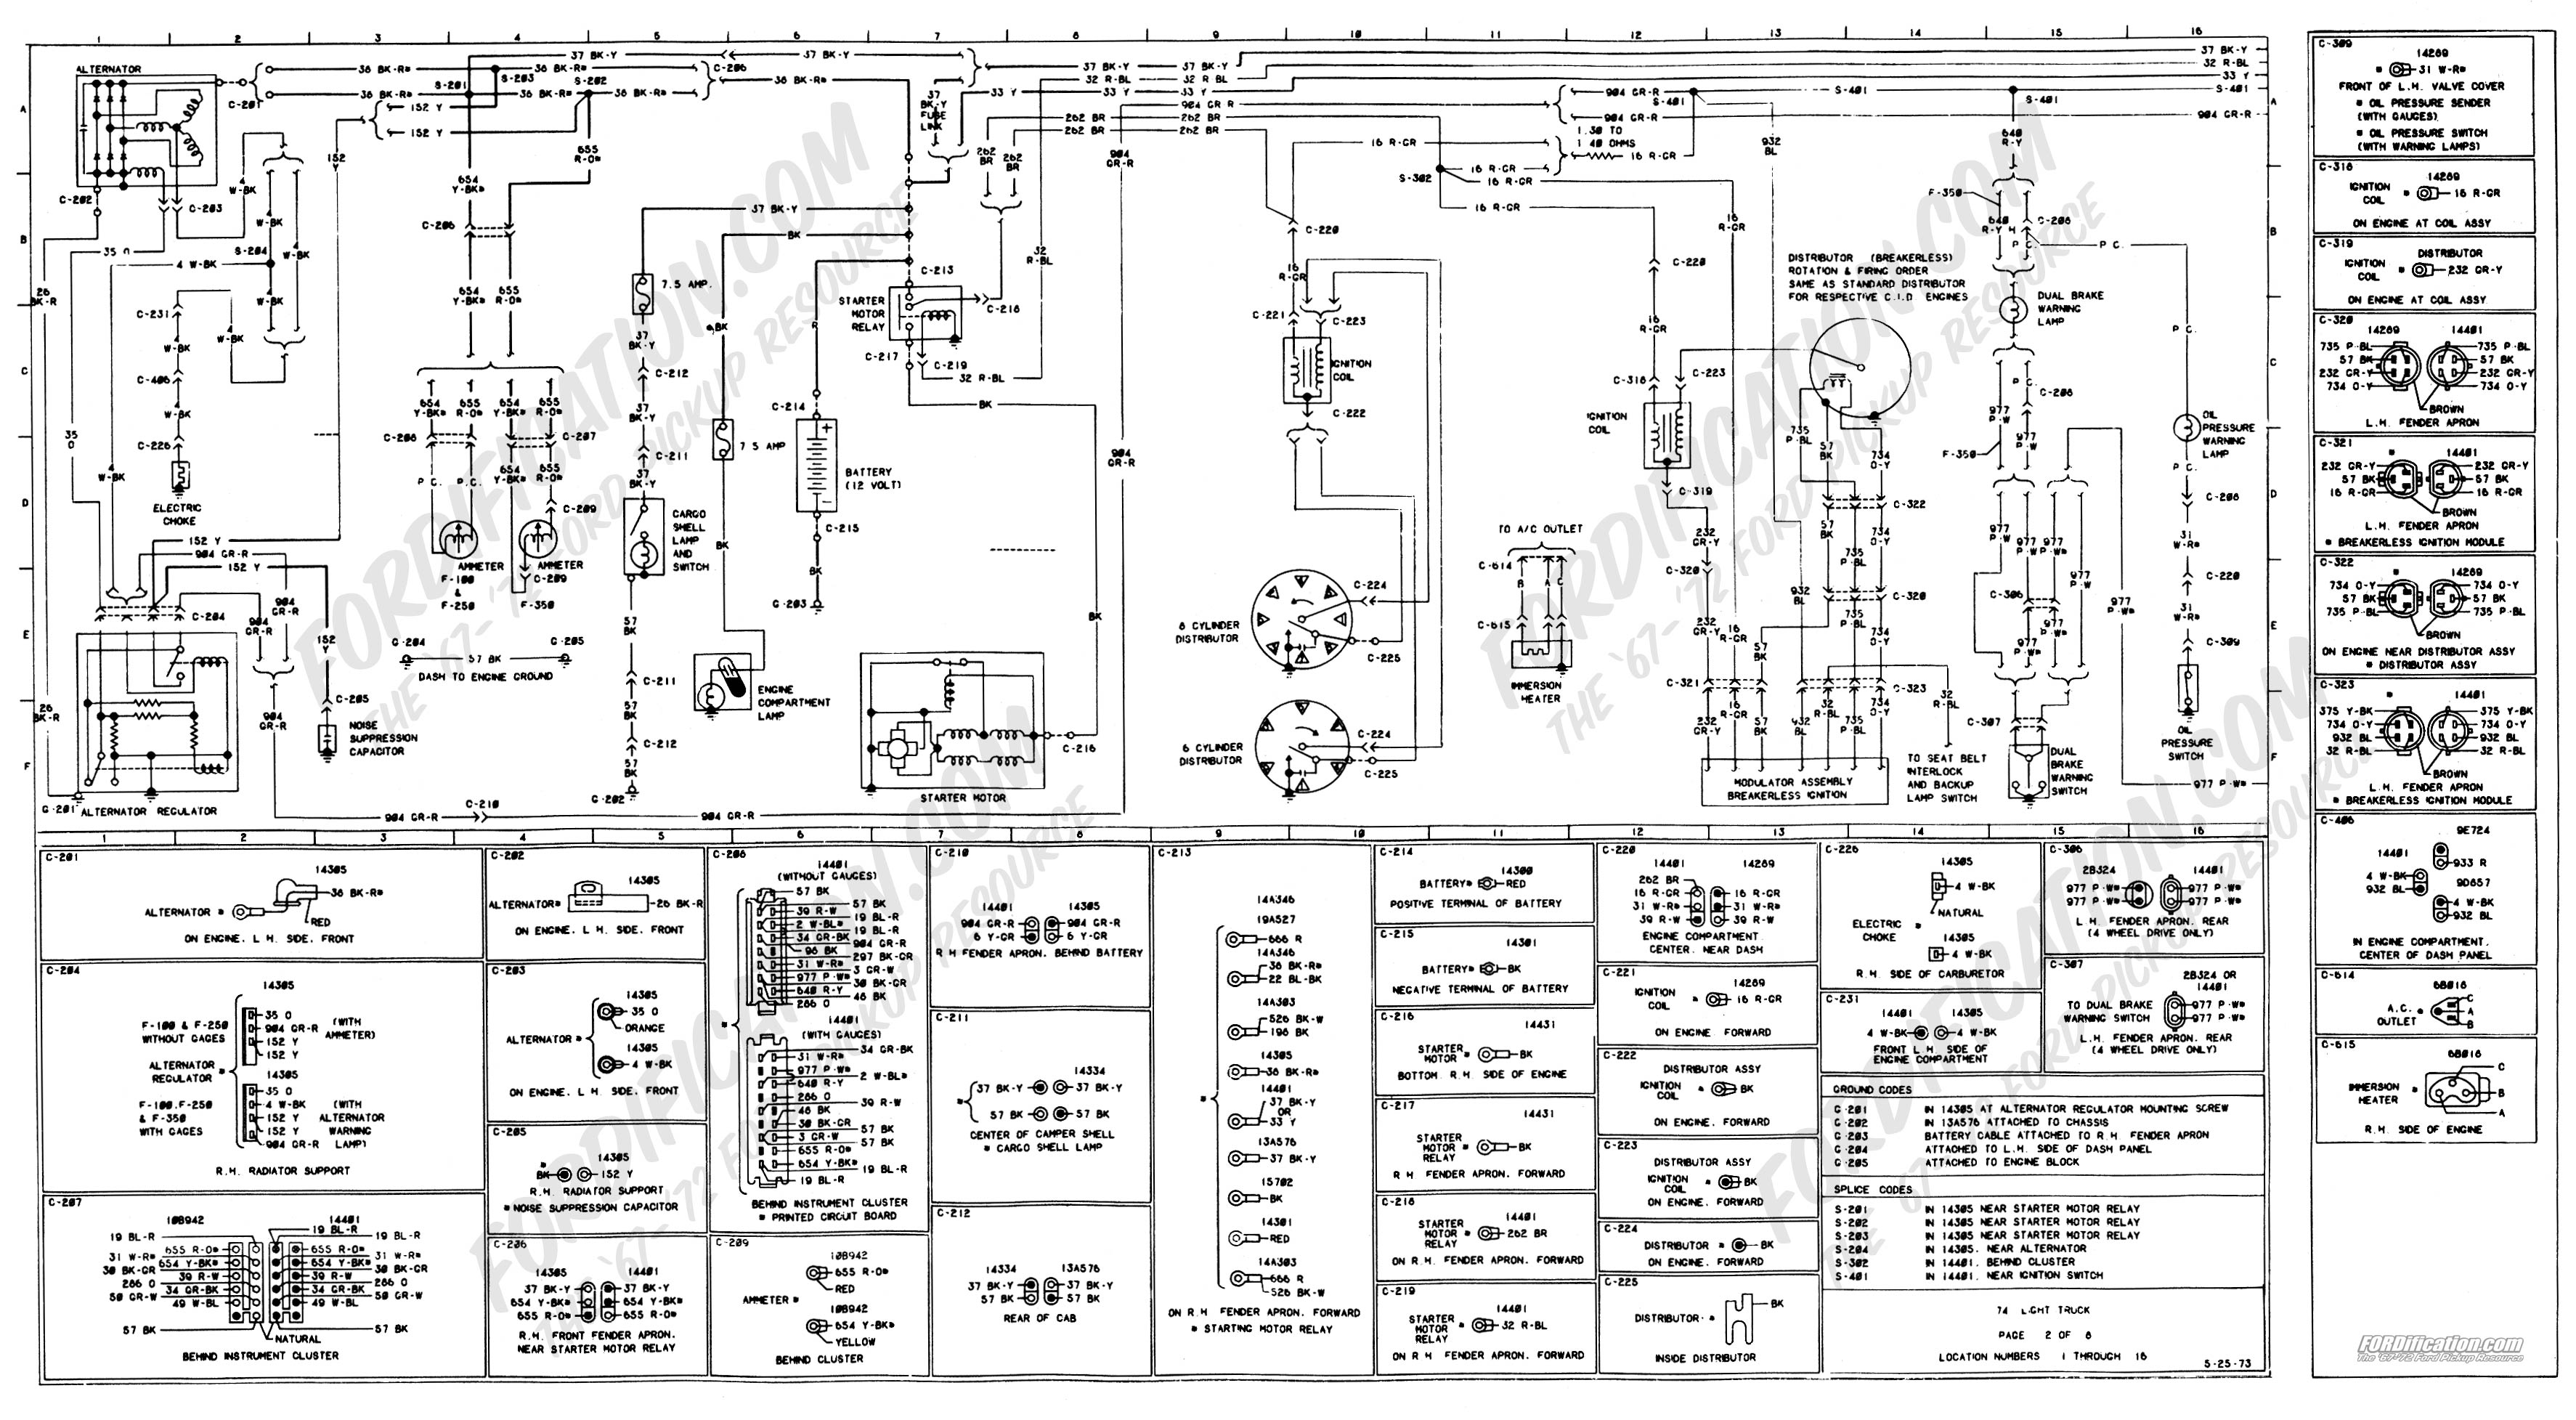 2003 F650 Fuse Panel Diagram also F650 Wiring Diagram Org further Jeep Liberty Wiring Diagram 2006 further 2001 Bmw X5 Fuse Panel Location further Ford Fuse Box Diagram 2008 F 650. on 2004 ford f750 fuse box diagram